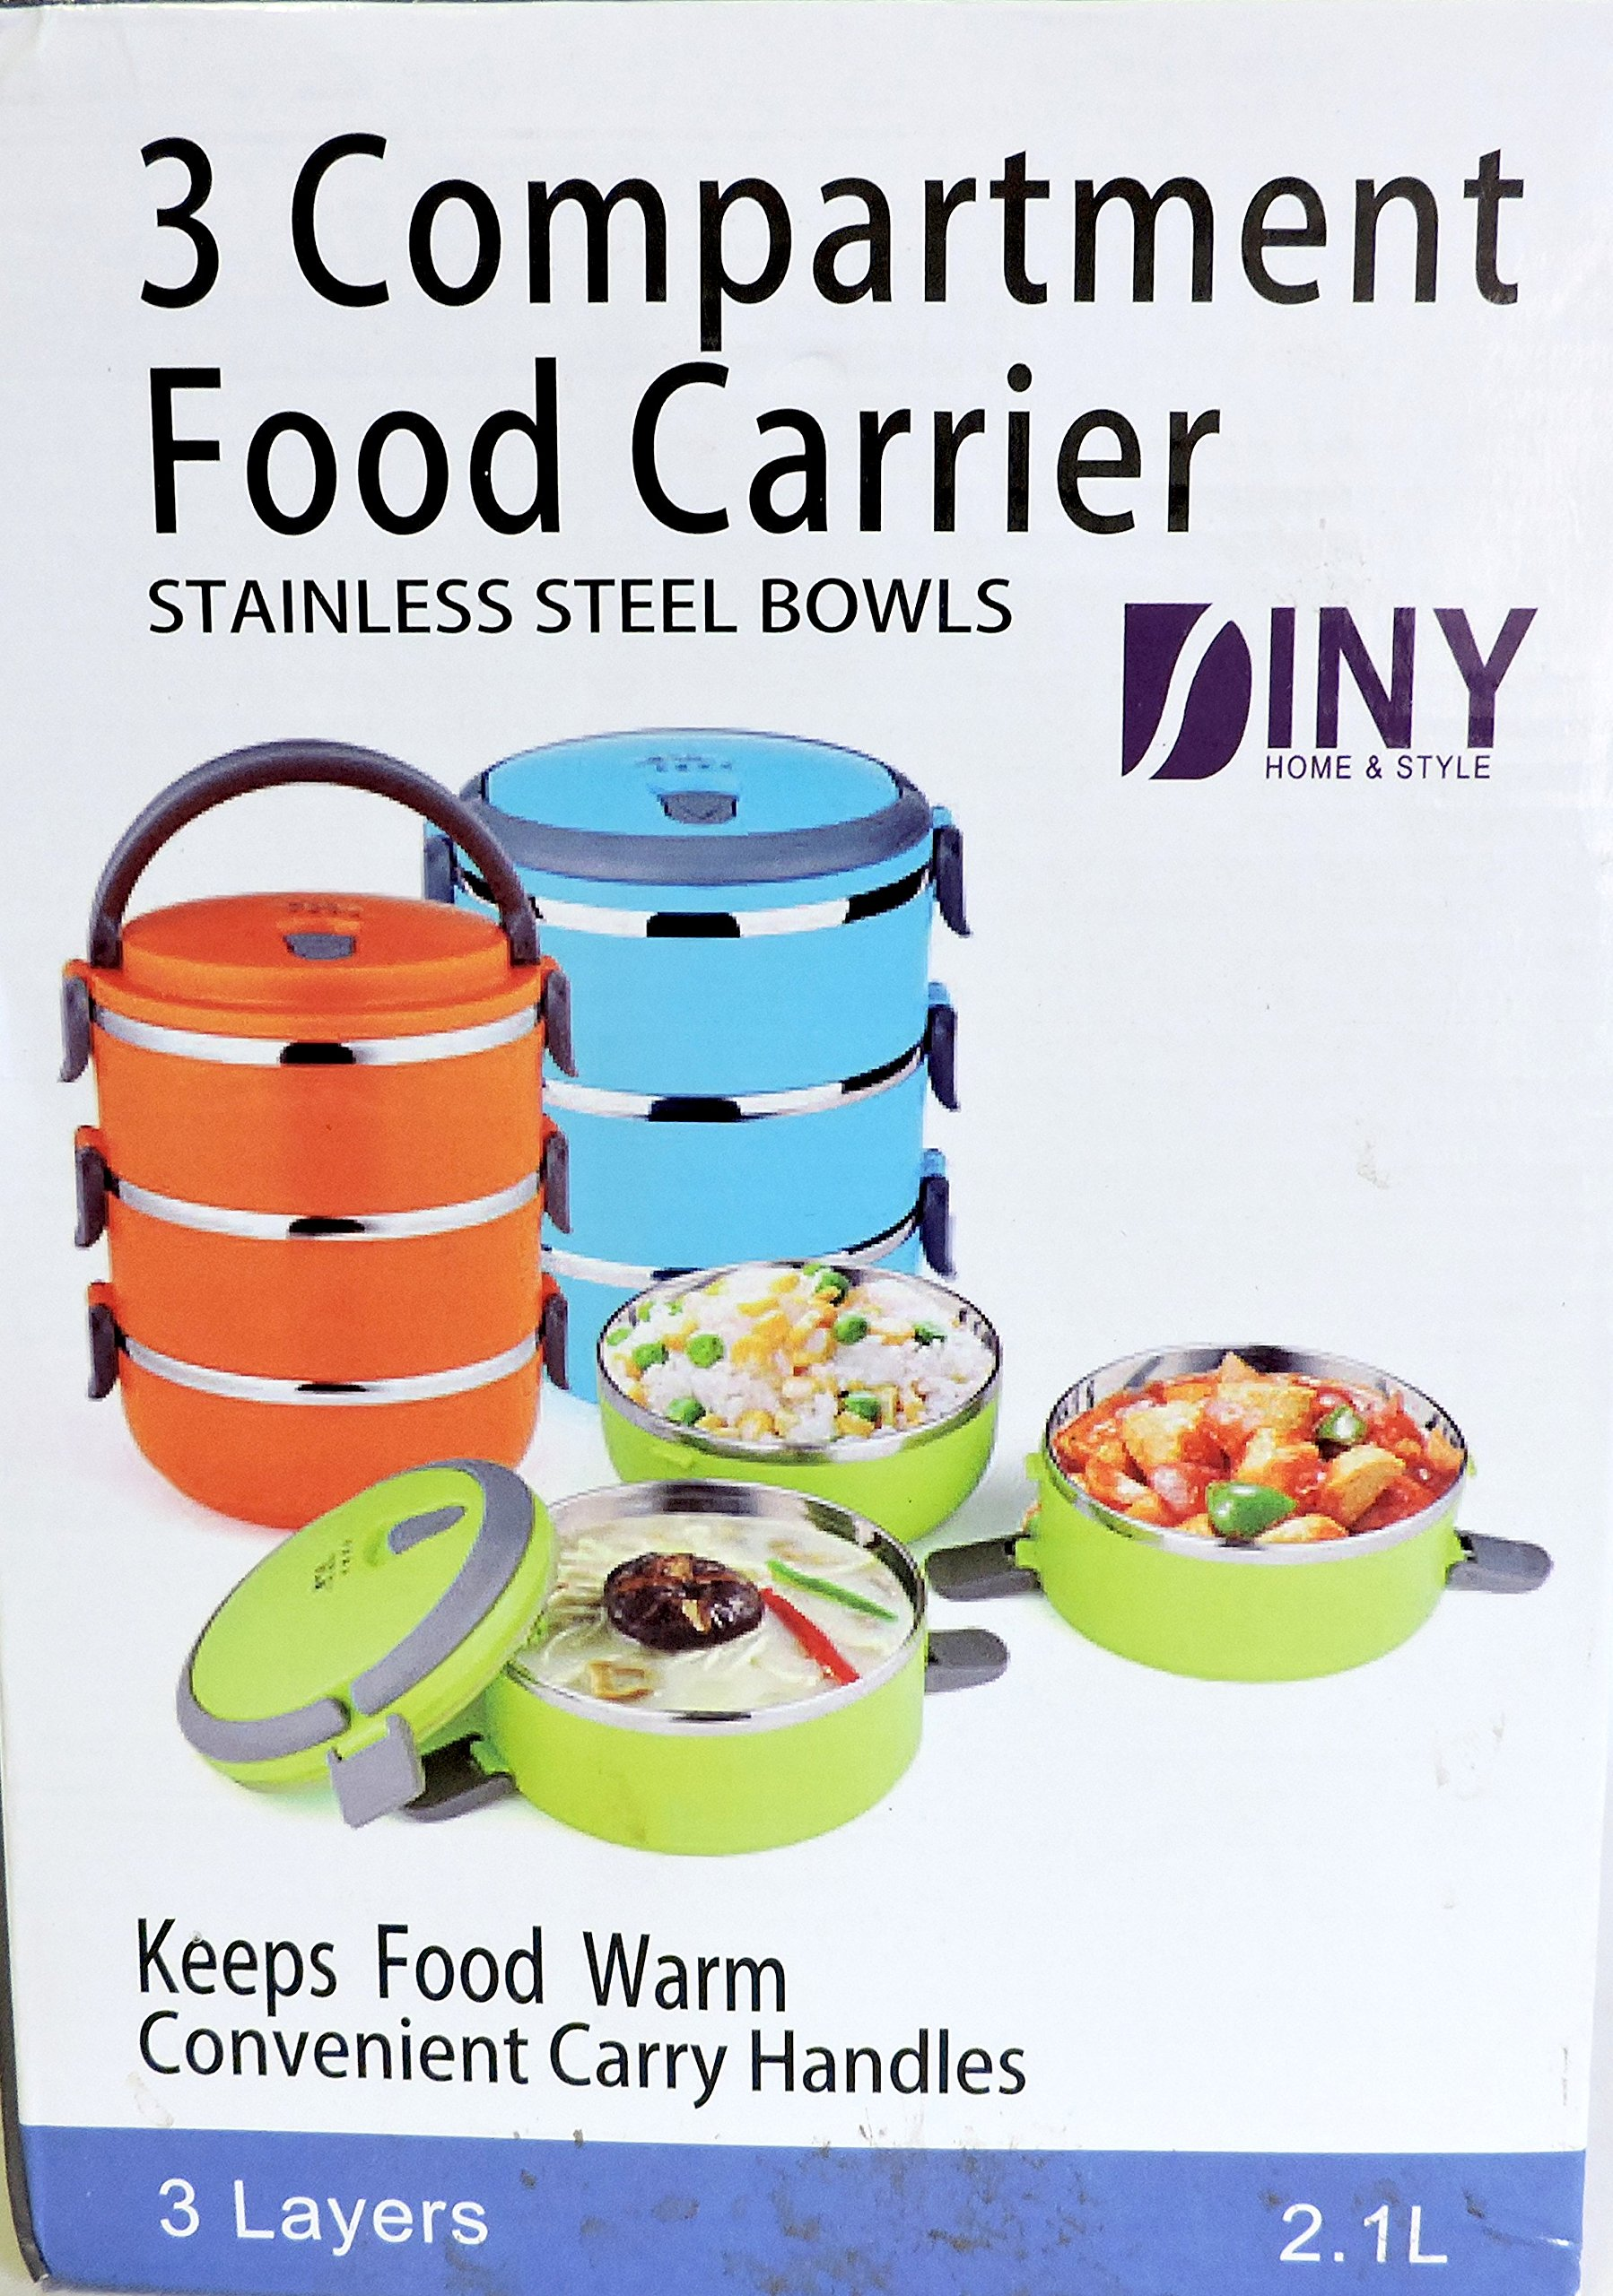 Diny Home 3 Compartment Lunch Box Food Carrier Bento Box Stainless Steel Bowls Keeps Food Fresh Vacuum Sealed Lids (Random Color Shipped)